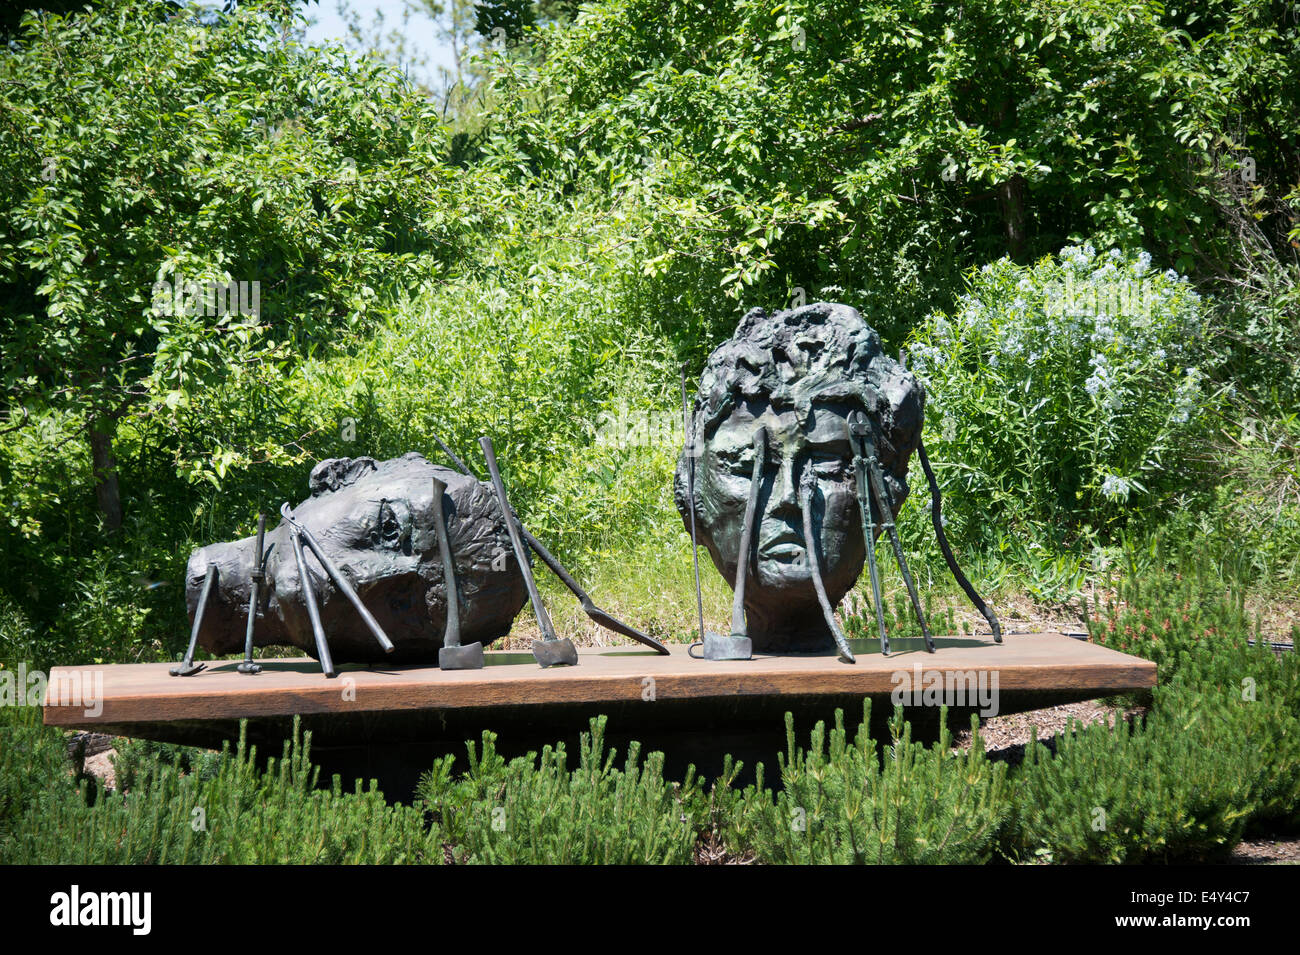 Sculpture in the Frederik Meijer Gardens & Sculpture Park. Grand Rapids, Michigan, USA. - Stock Image